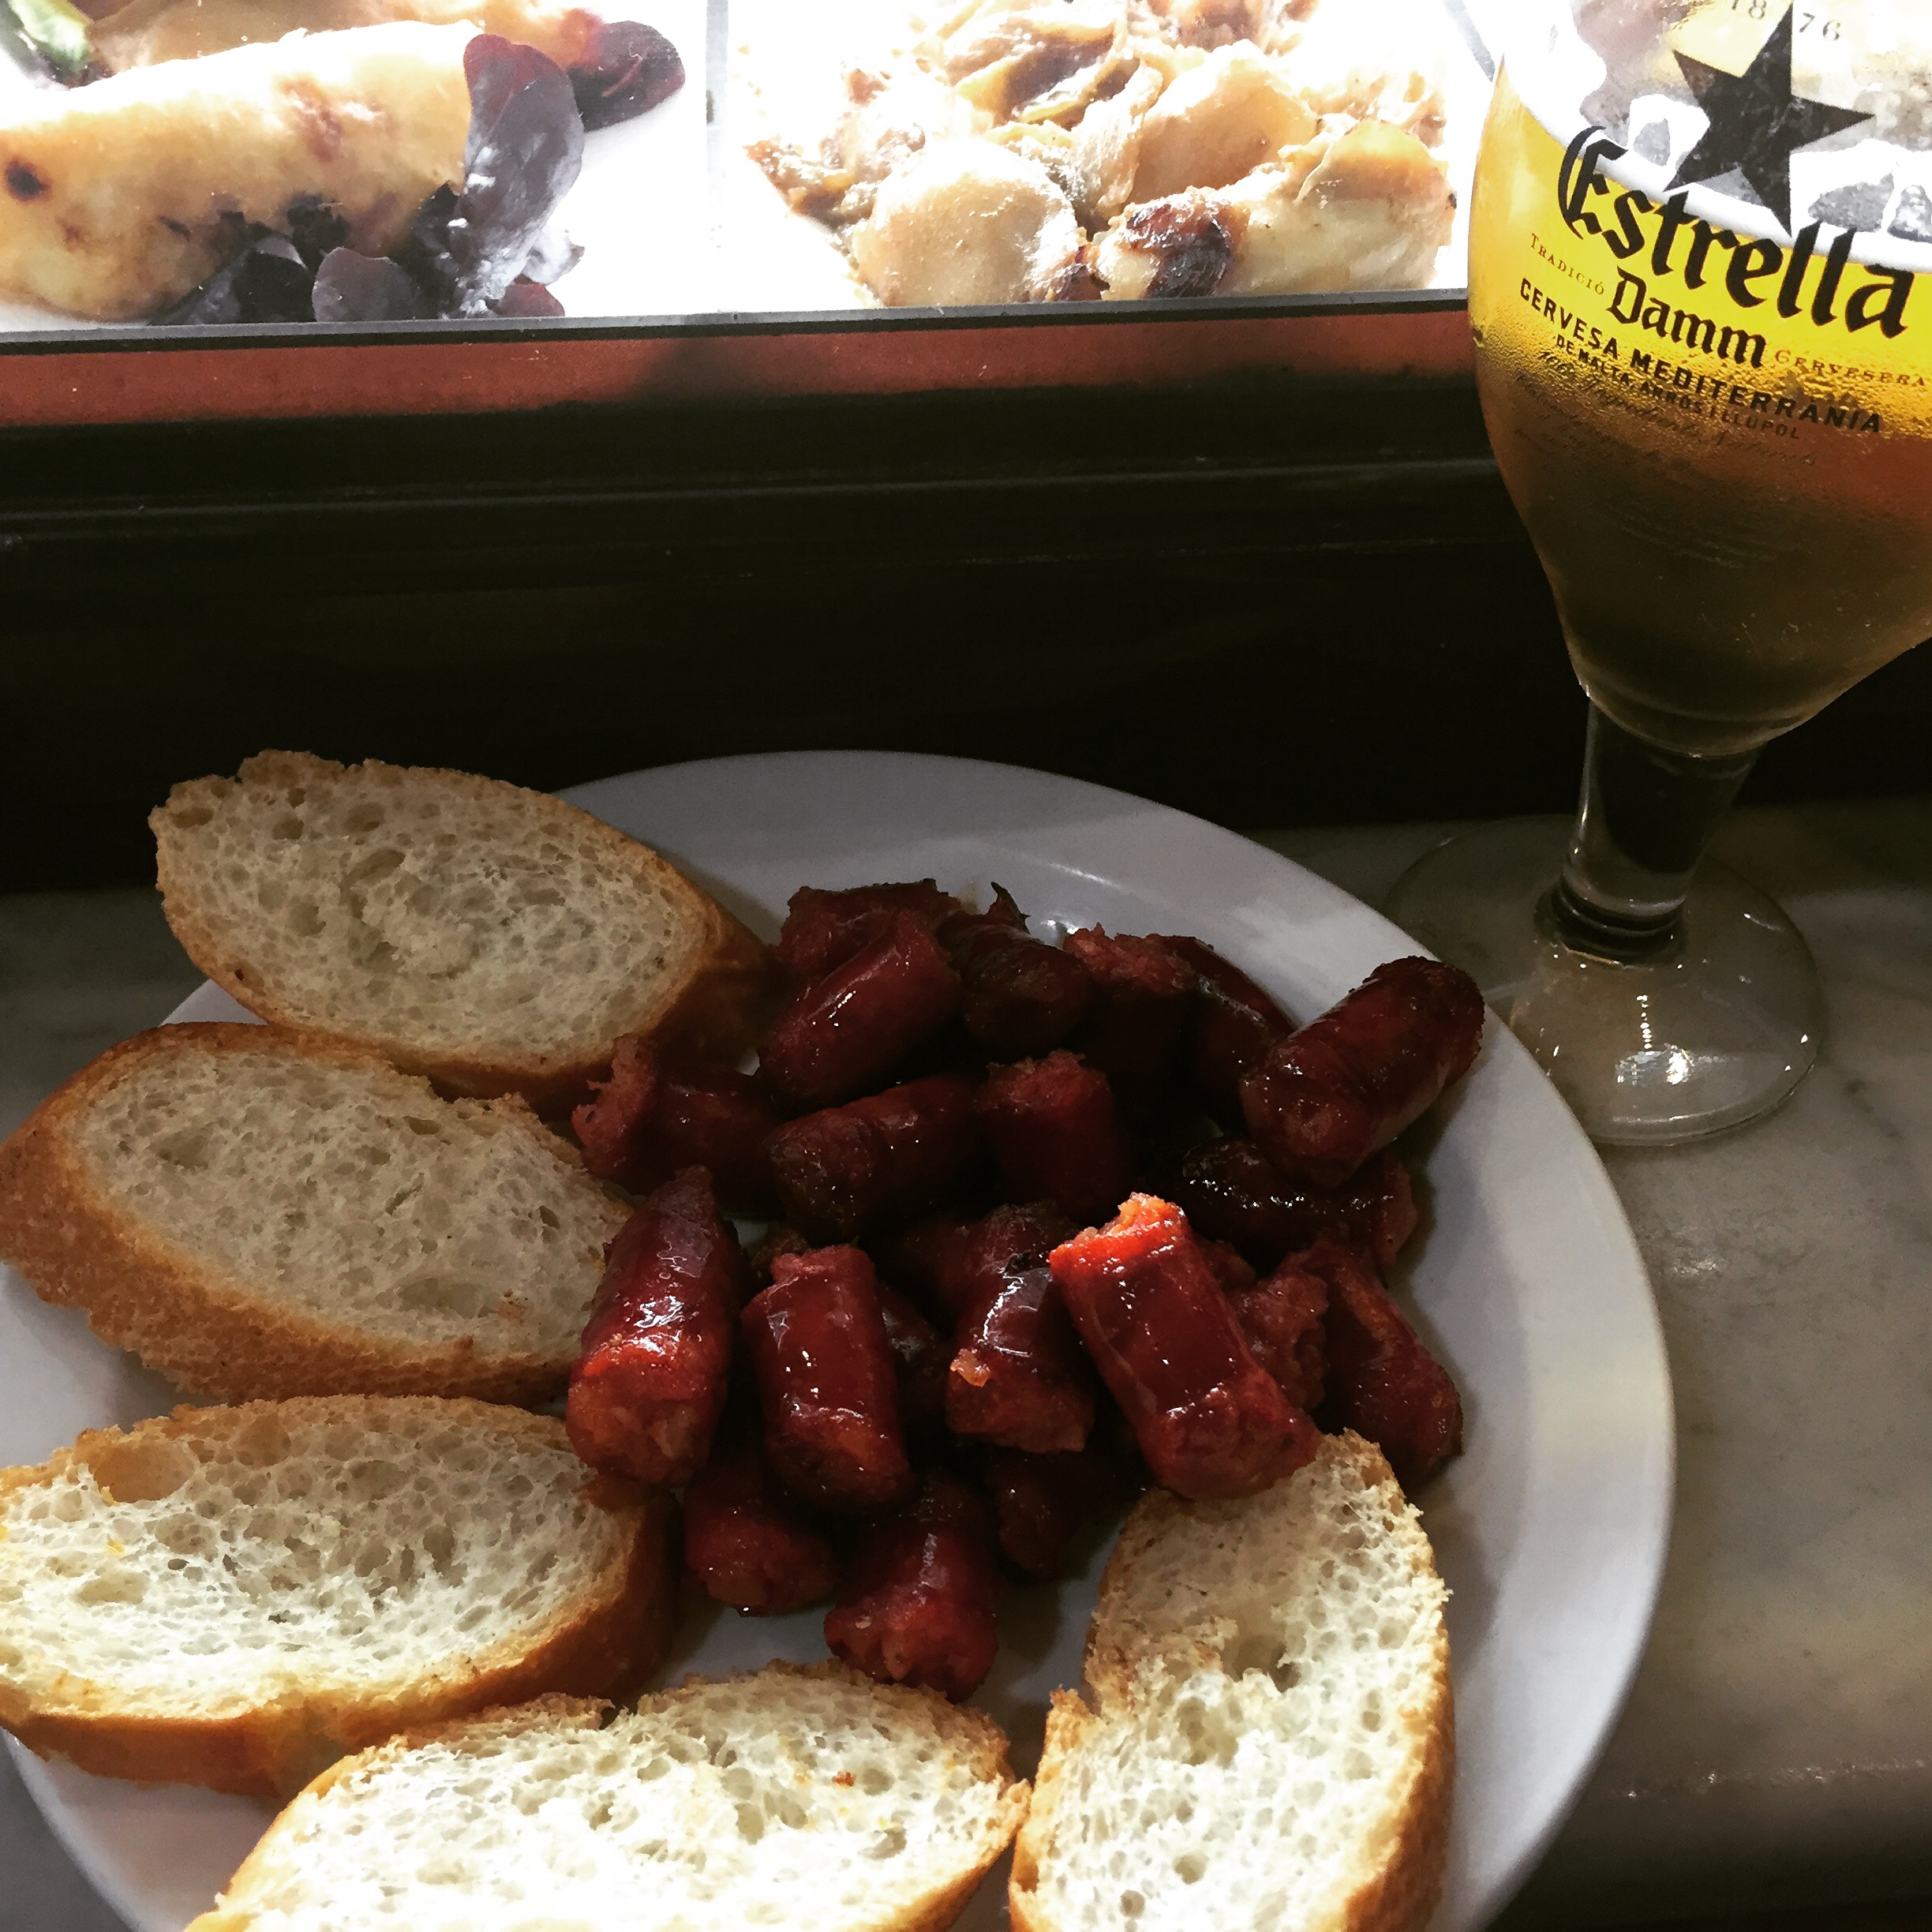 Chorizo tapas at #Fandango, a good place for some tapas right down the street from my apartment in Barcelona.